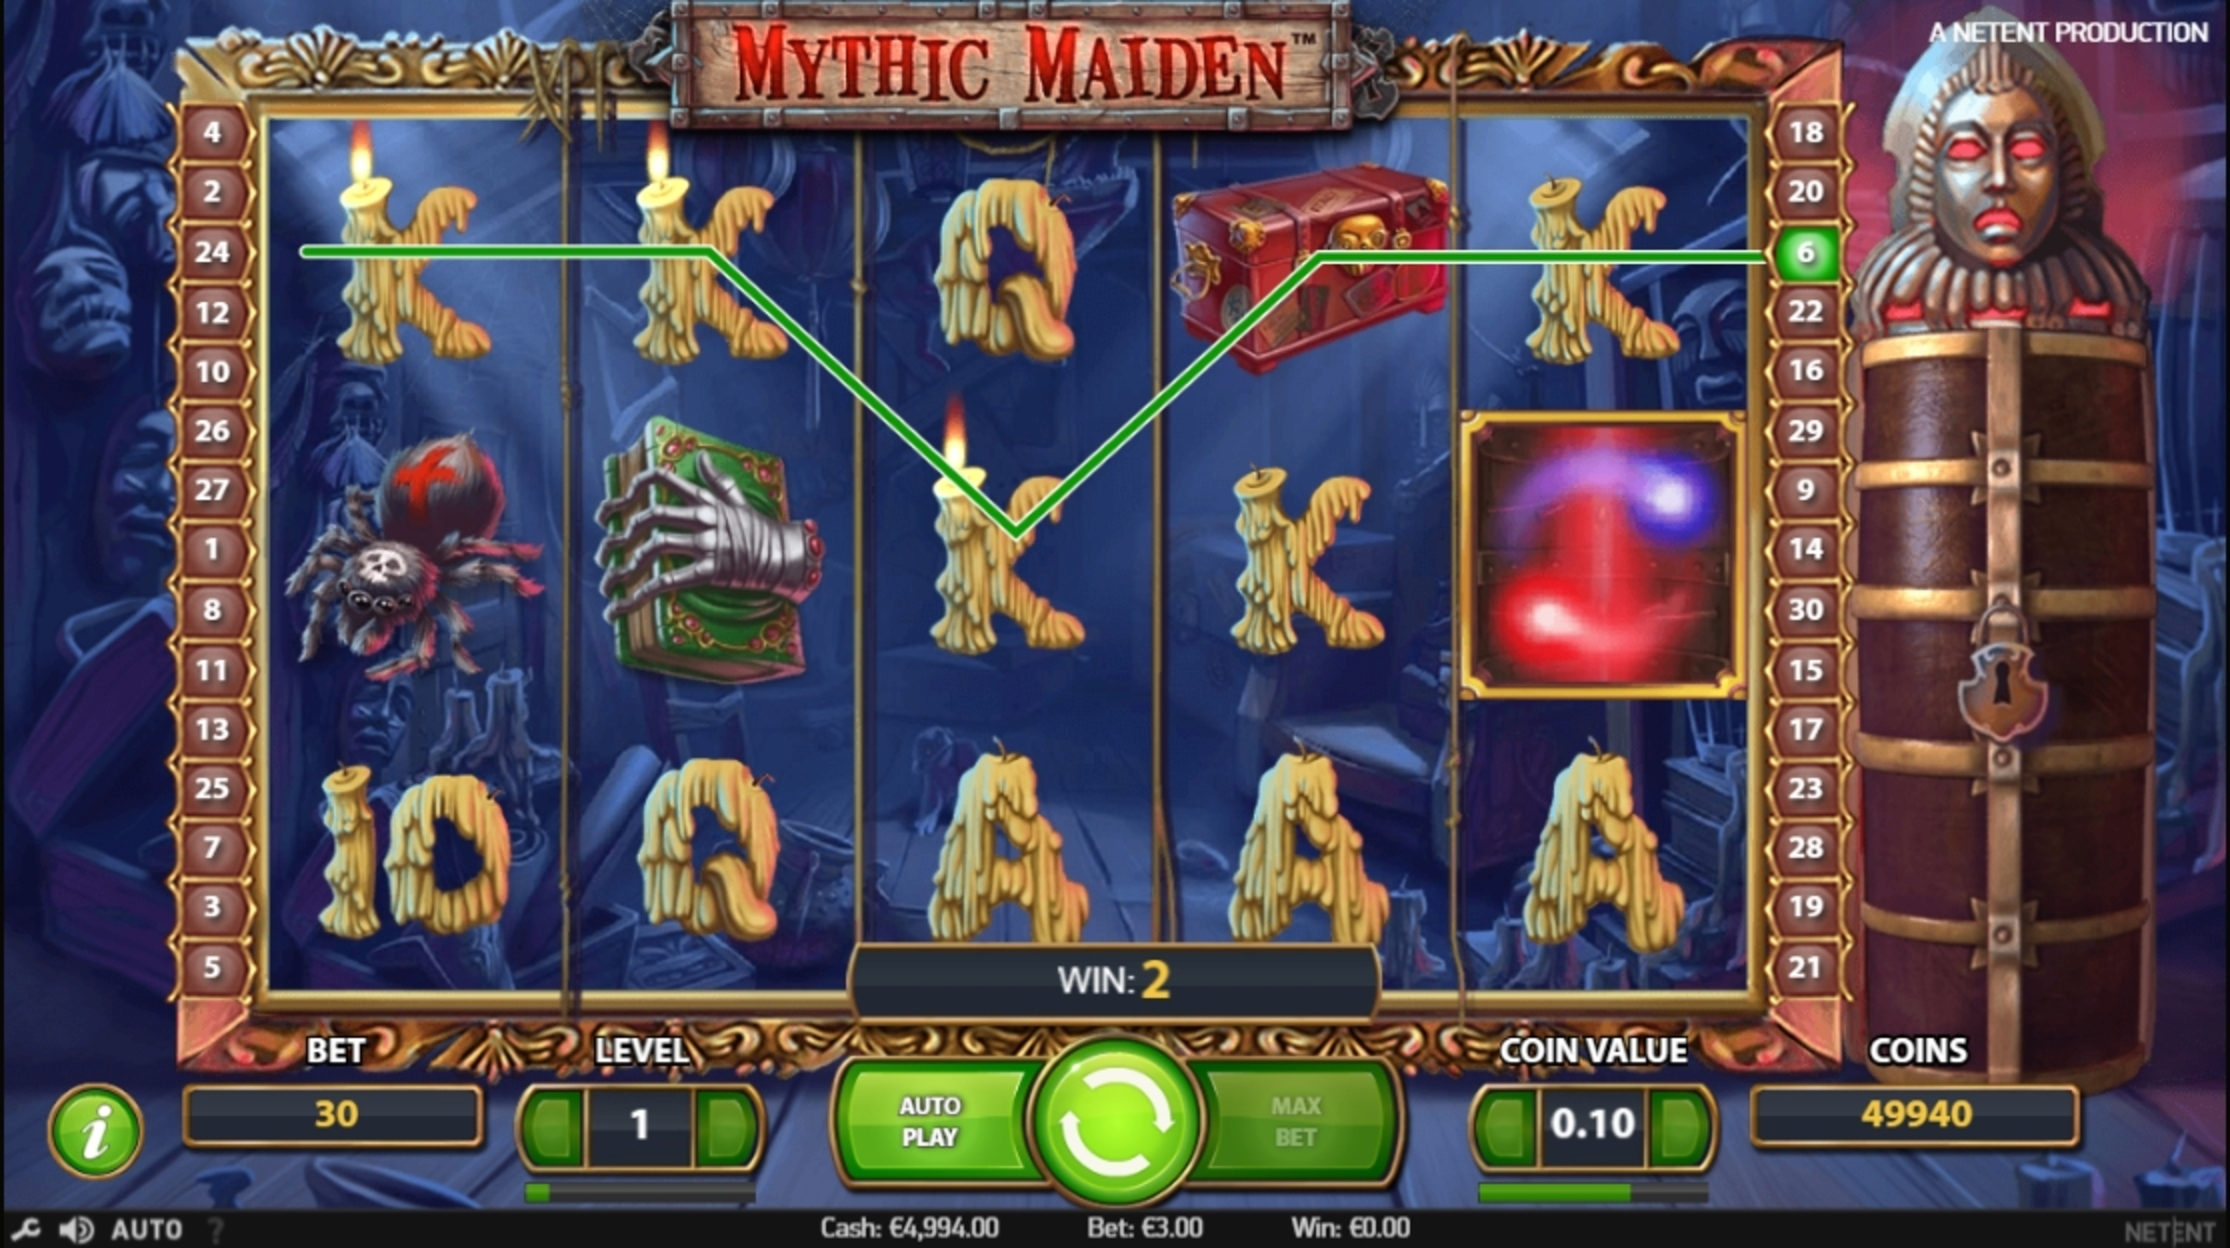 Win Money in Mythic Maiden Free Slot Game by NetEnt